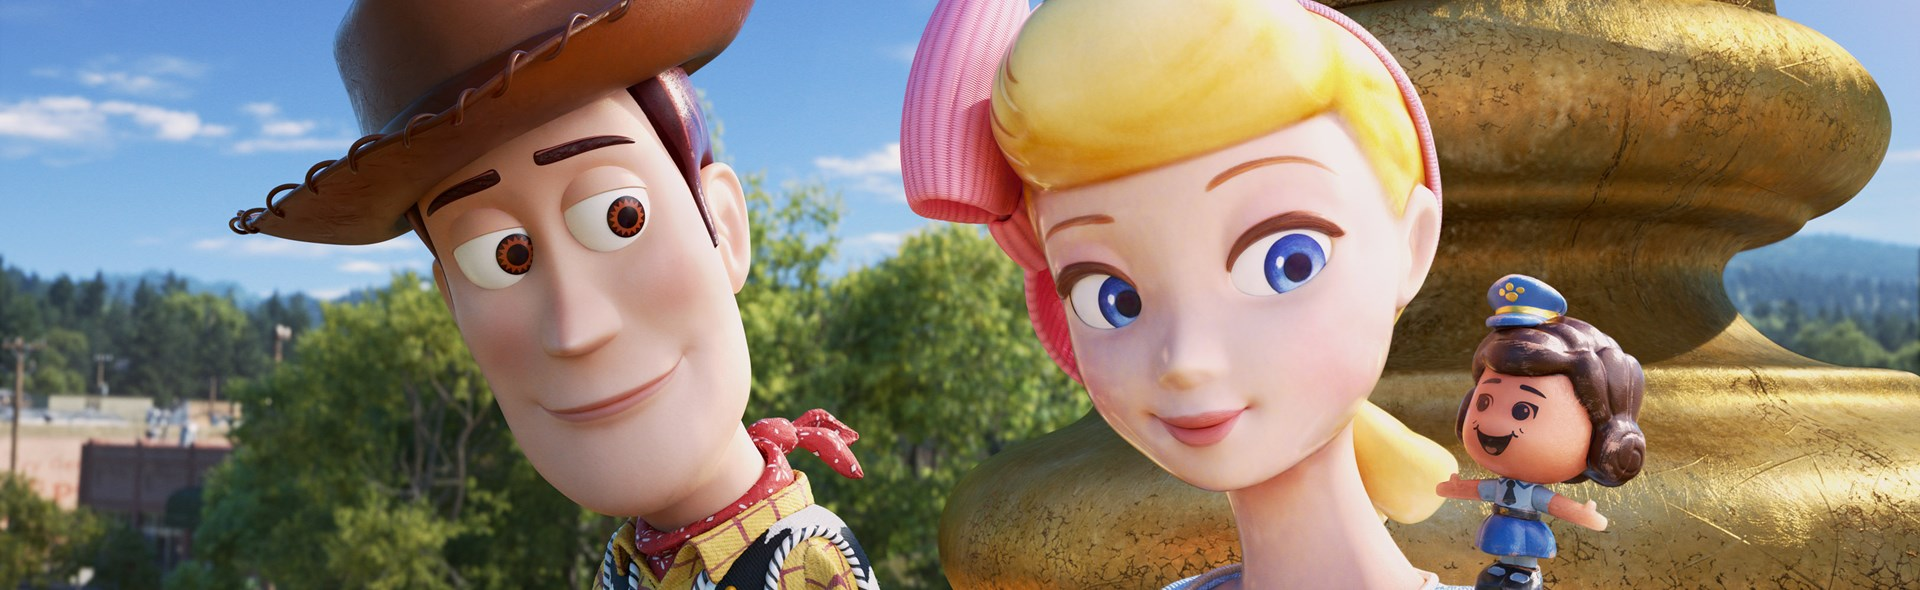 Film Sewcial: Toy Story 4 (PG)